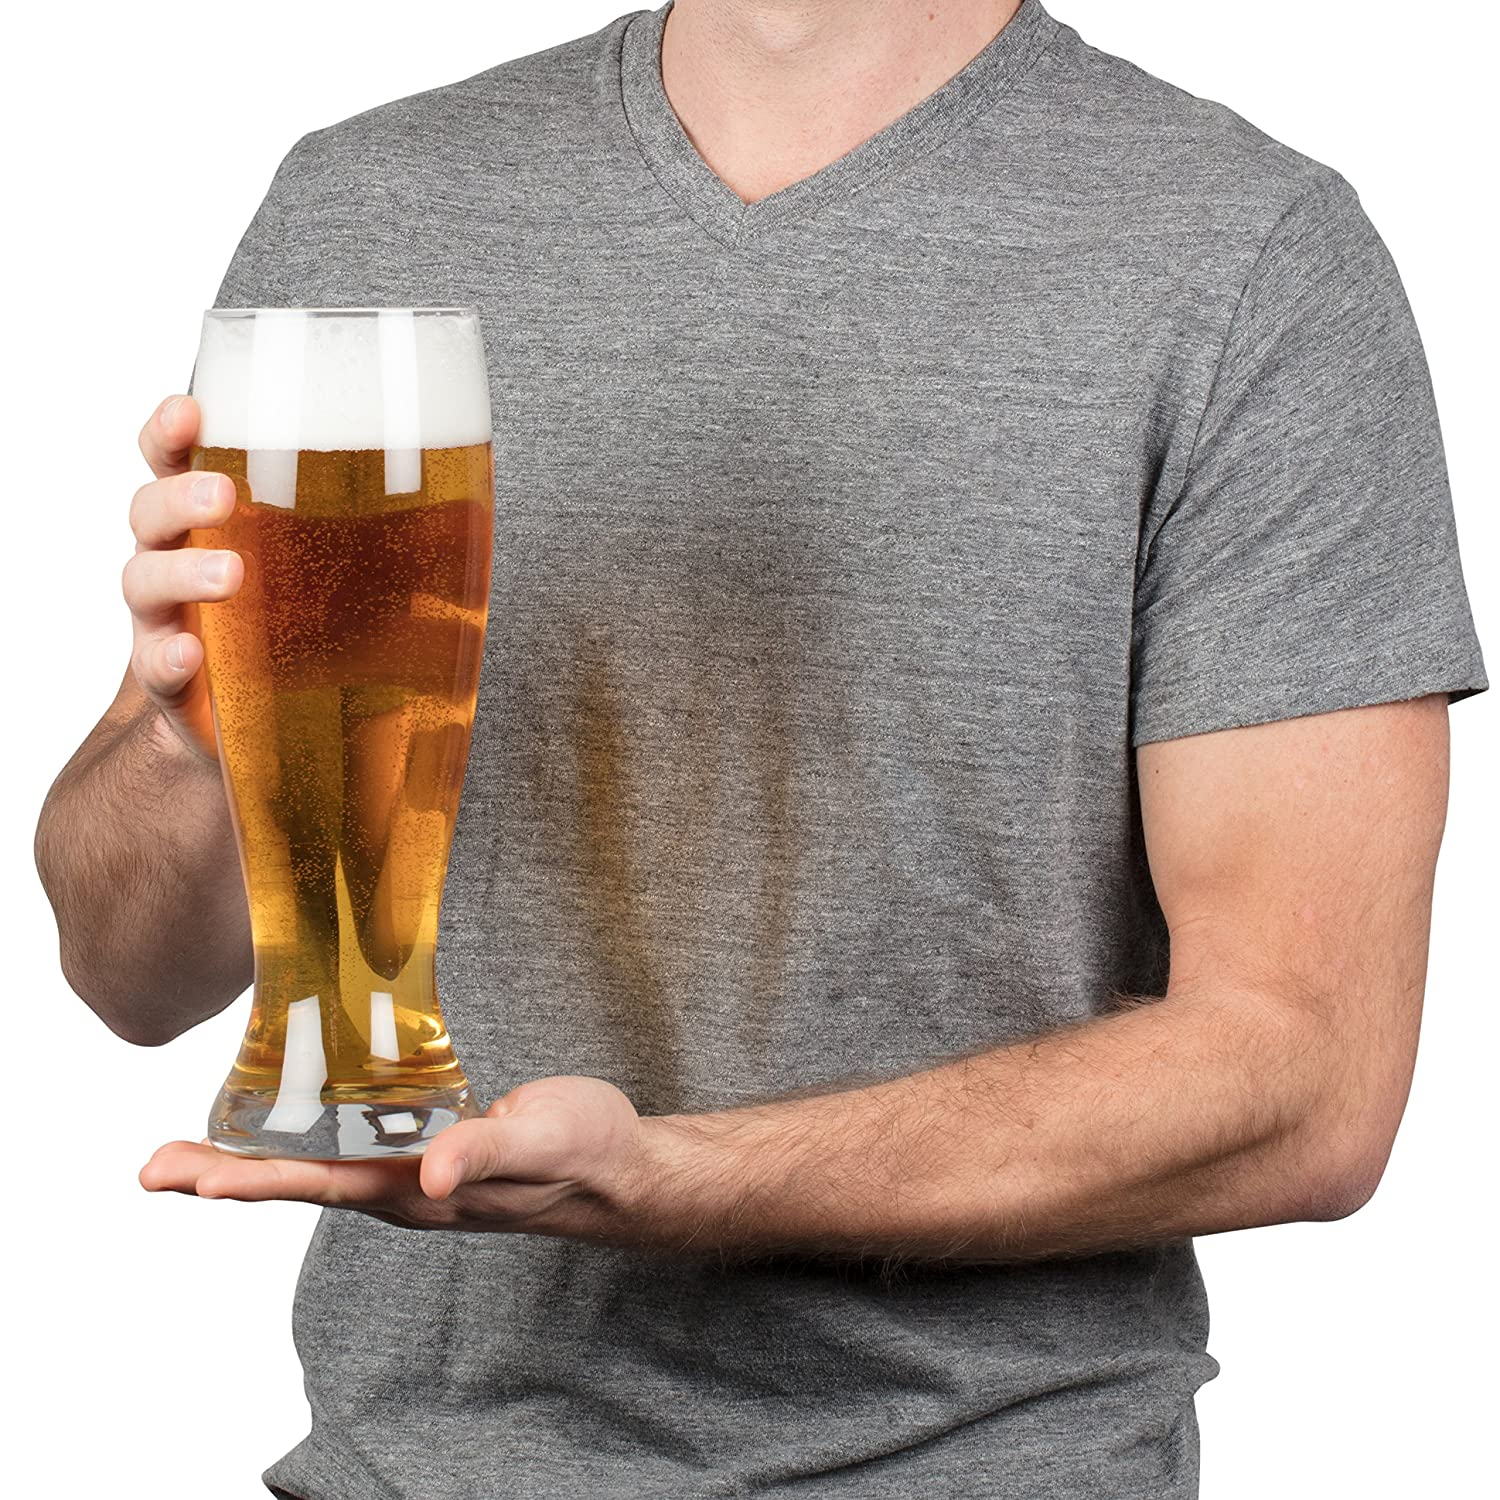 Oversized Extra Large Giant Beer Glass - 53oz - Holds up to 4 Bottles of Beers Royal Lush BHBUKPPAZINH1275